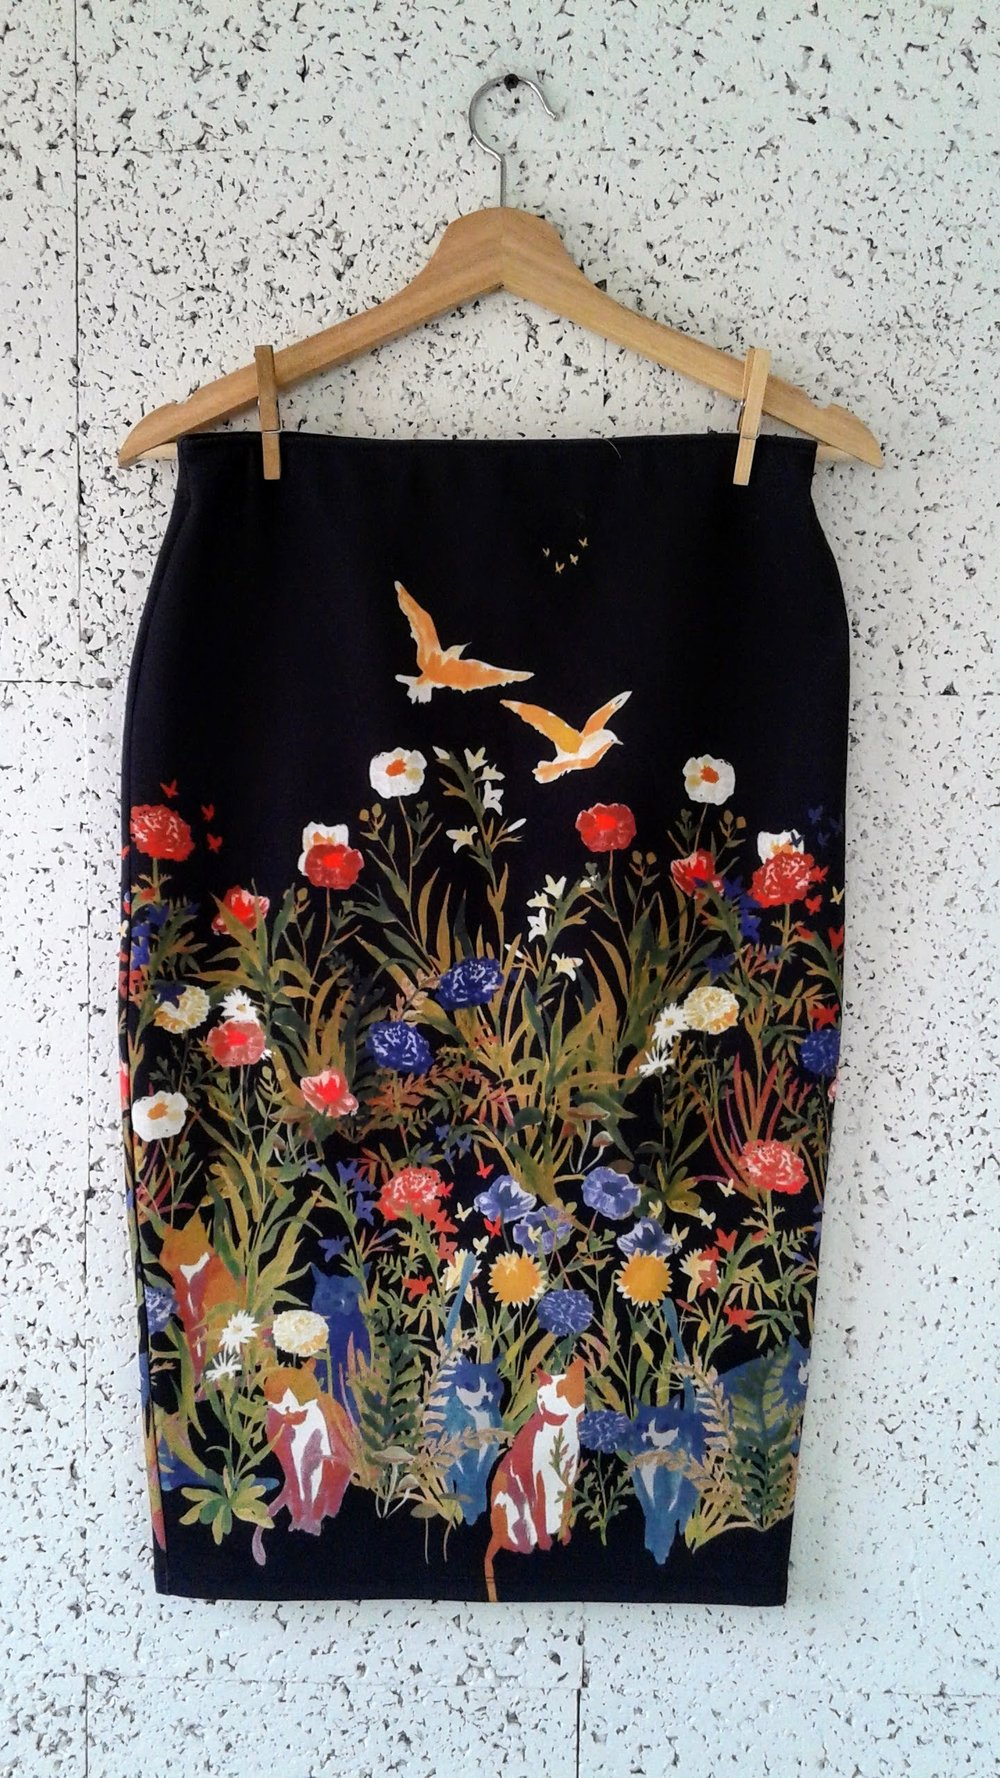 Birds, Flowers and Cats skirt; Size M, $24